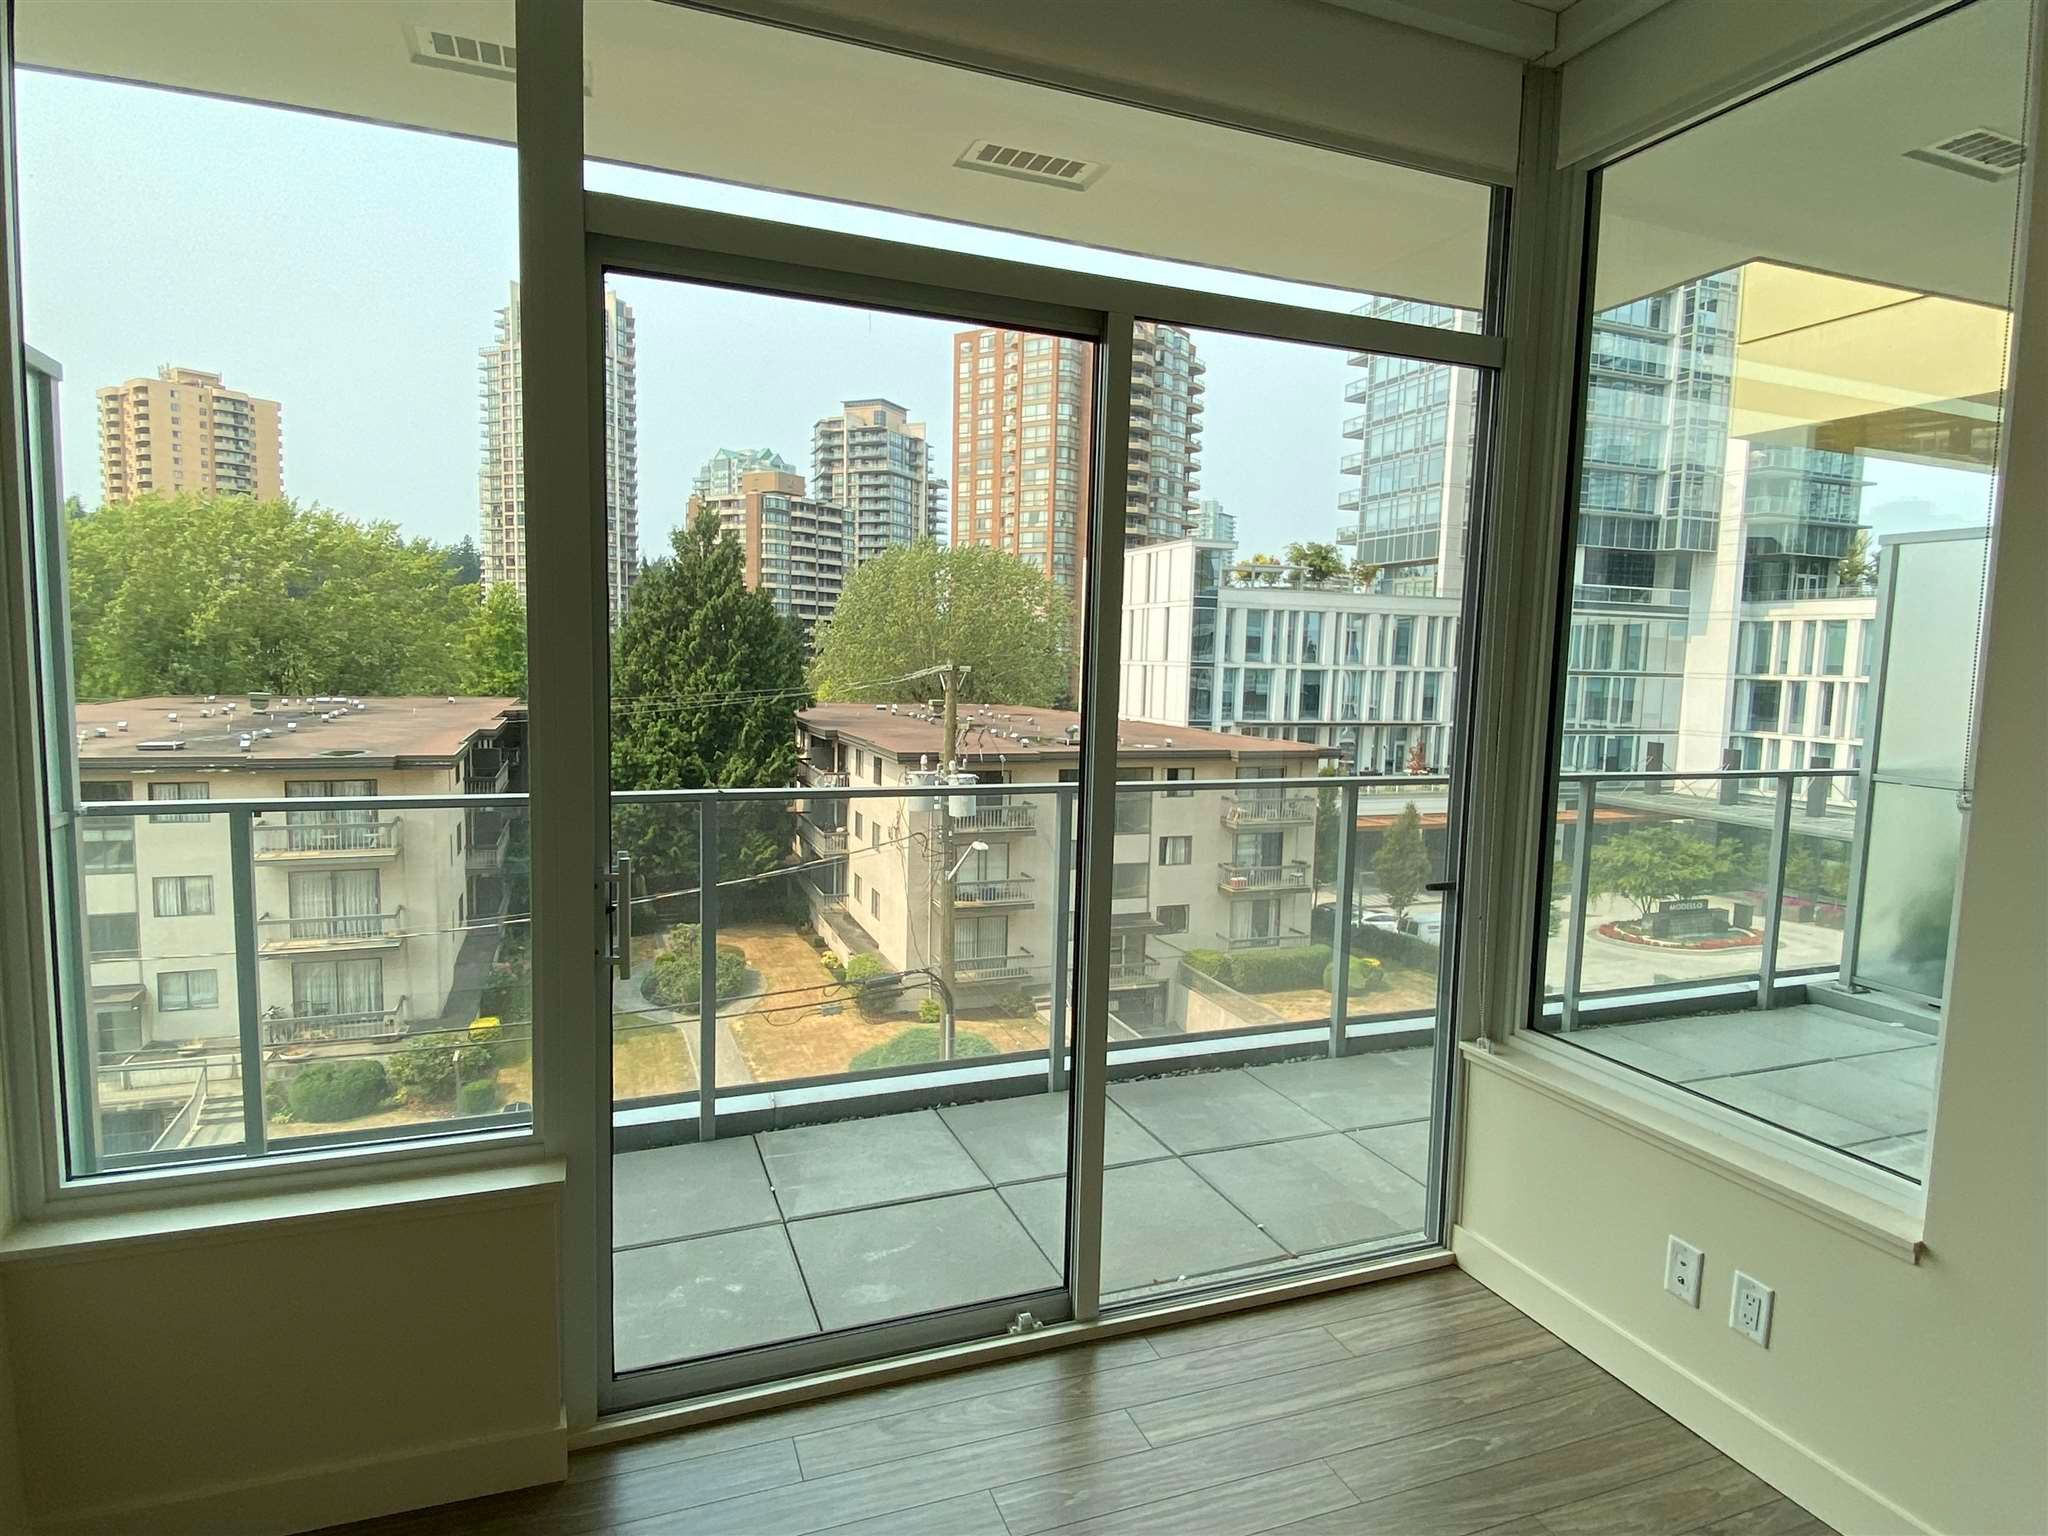 """Photo 18: Photos: 308 6288 CASSIE Avenue in Burnaby: Metrotown Condo for sale in """"GOLD HOUSE SOUTH TOWER"""" (Burnaby South)  : MLS®# R2606367"""